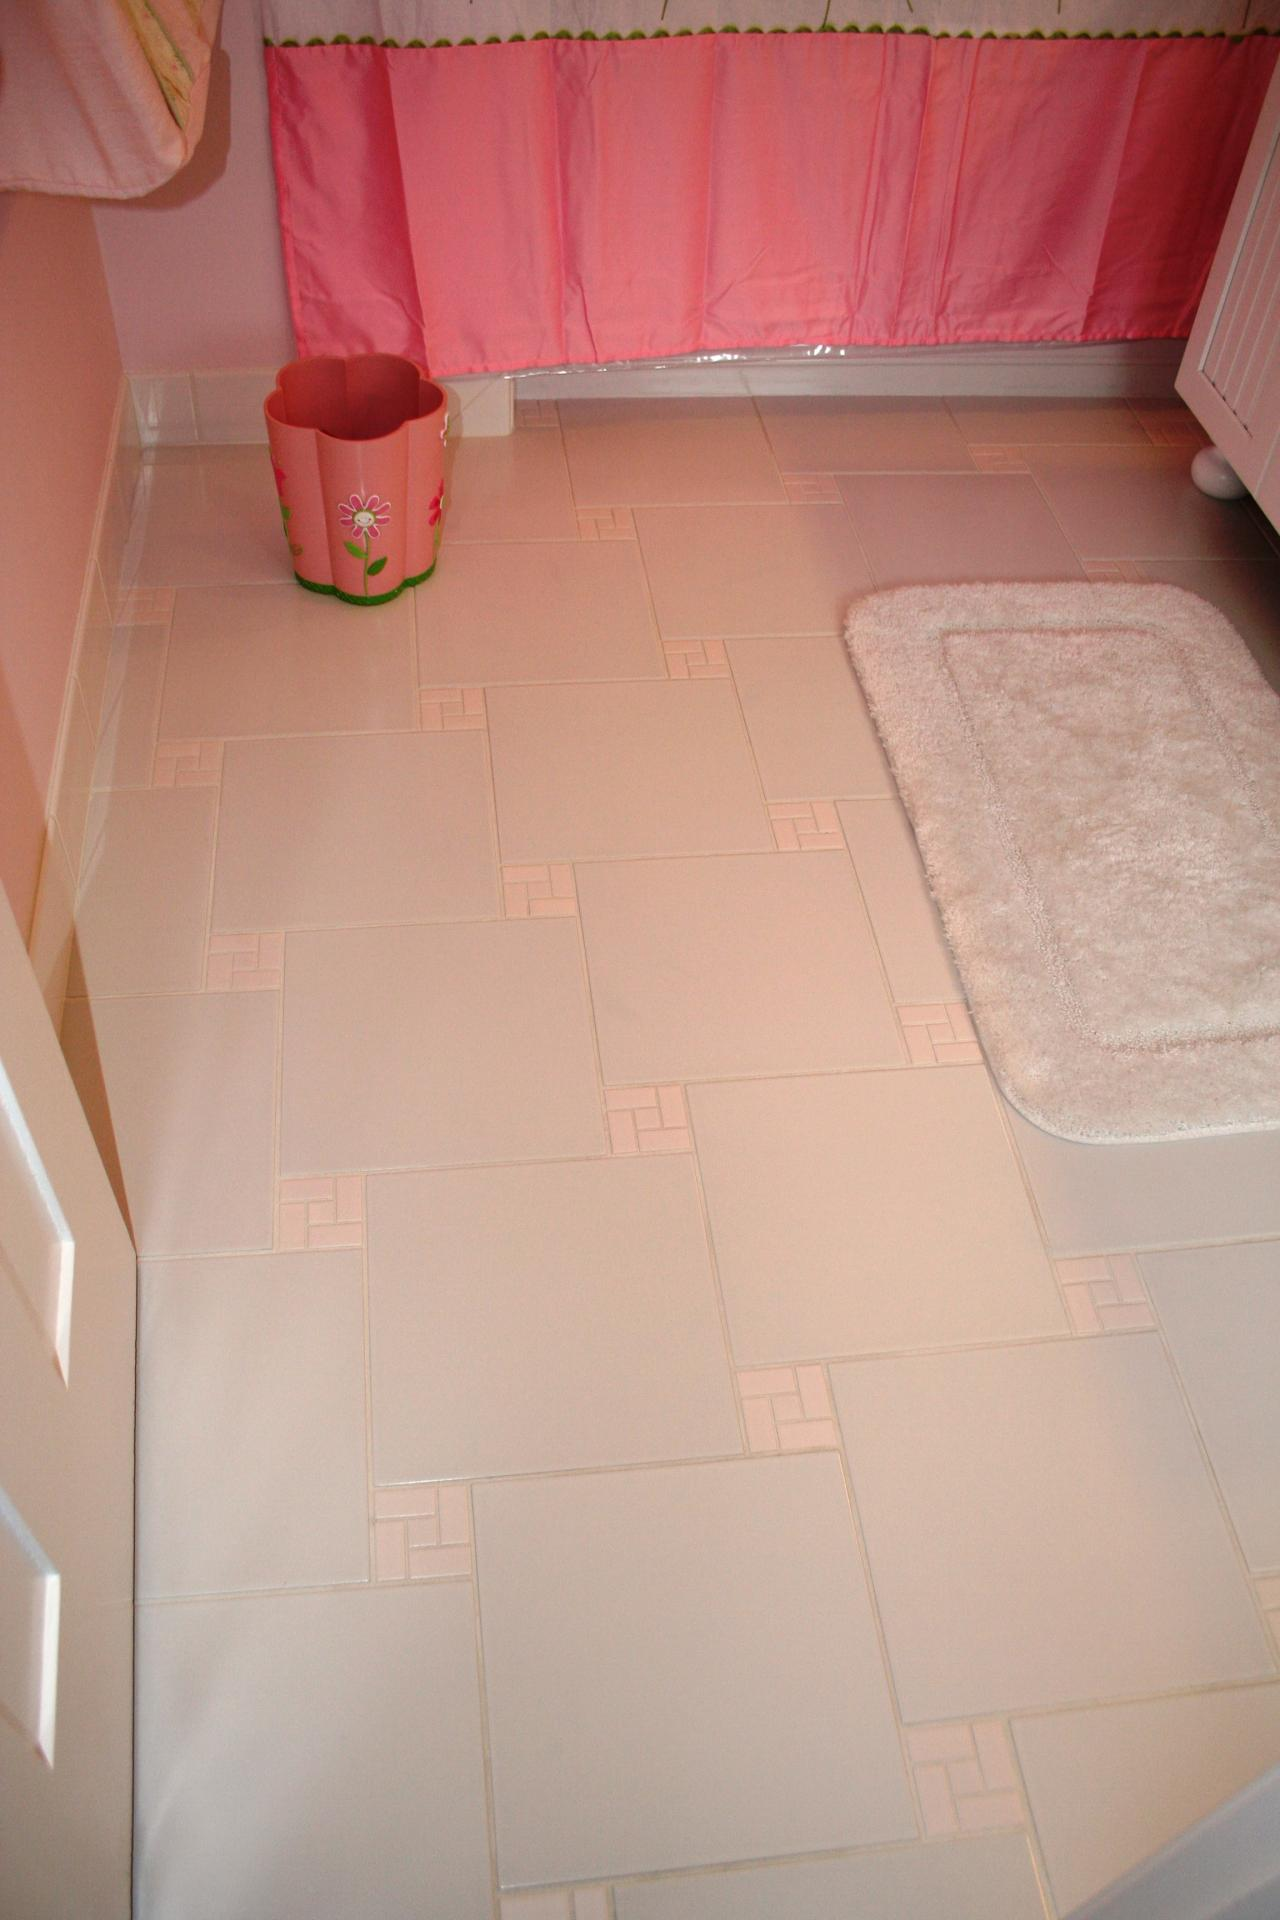 Nest homes construction childrens bathroom in bratenahl oh finished floor dailygadgetfo Images